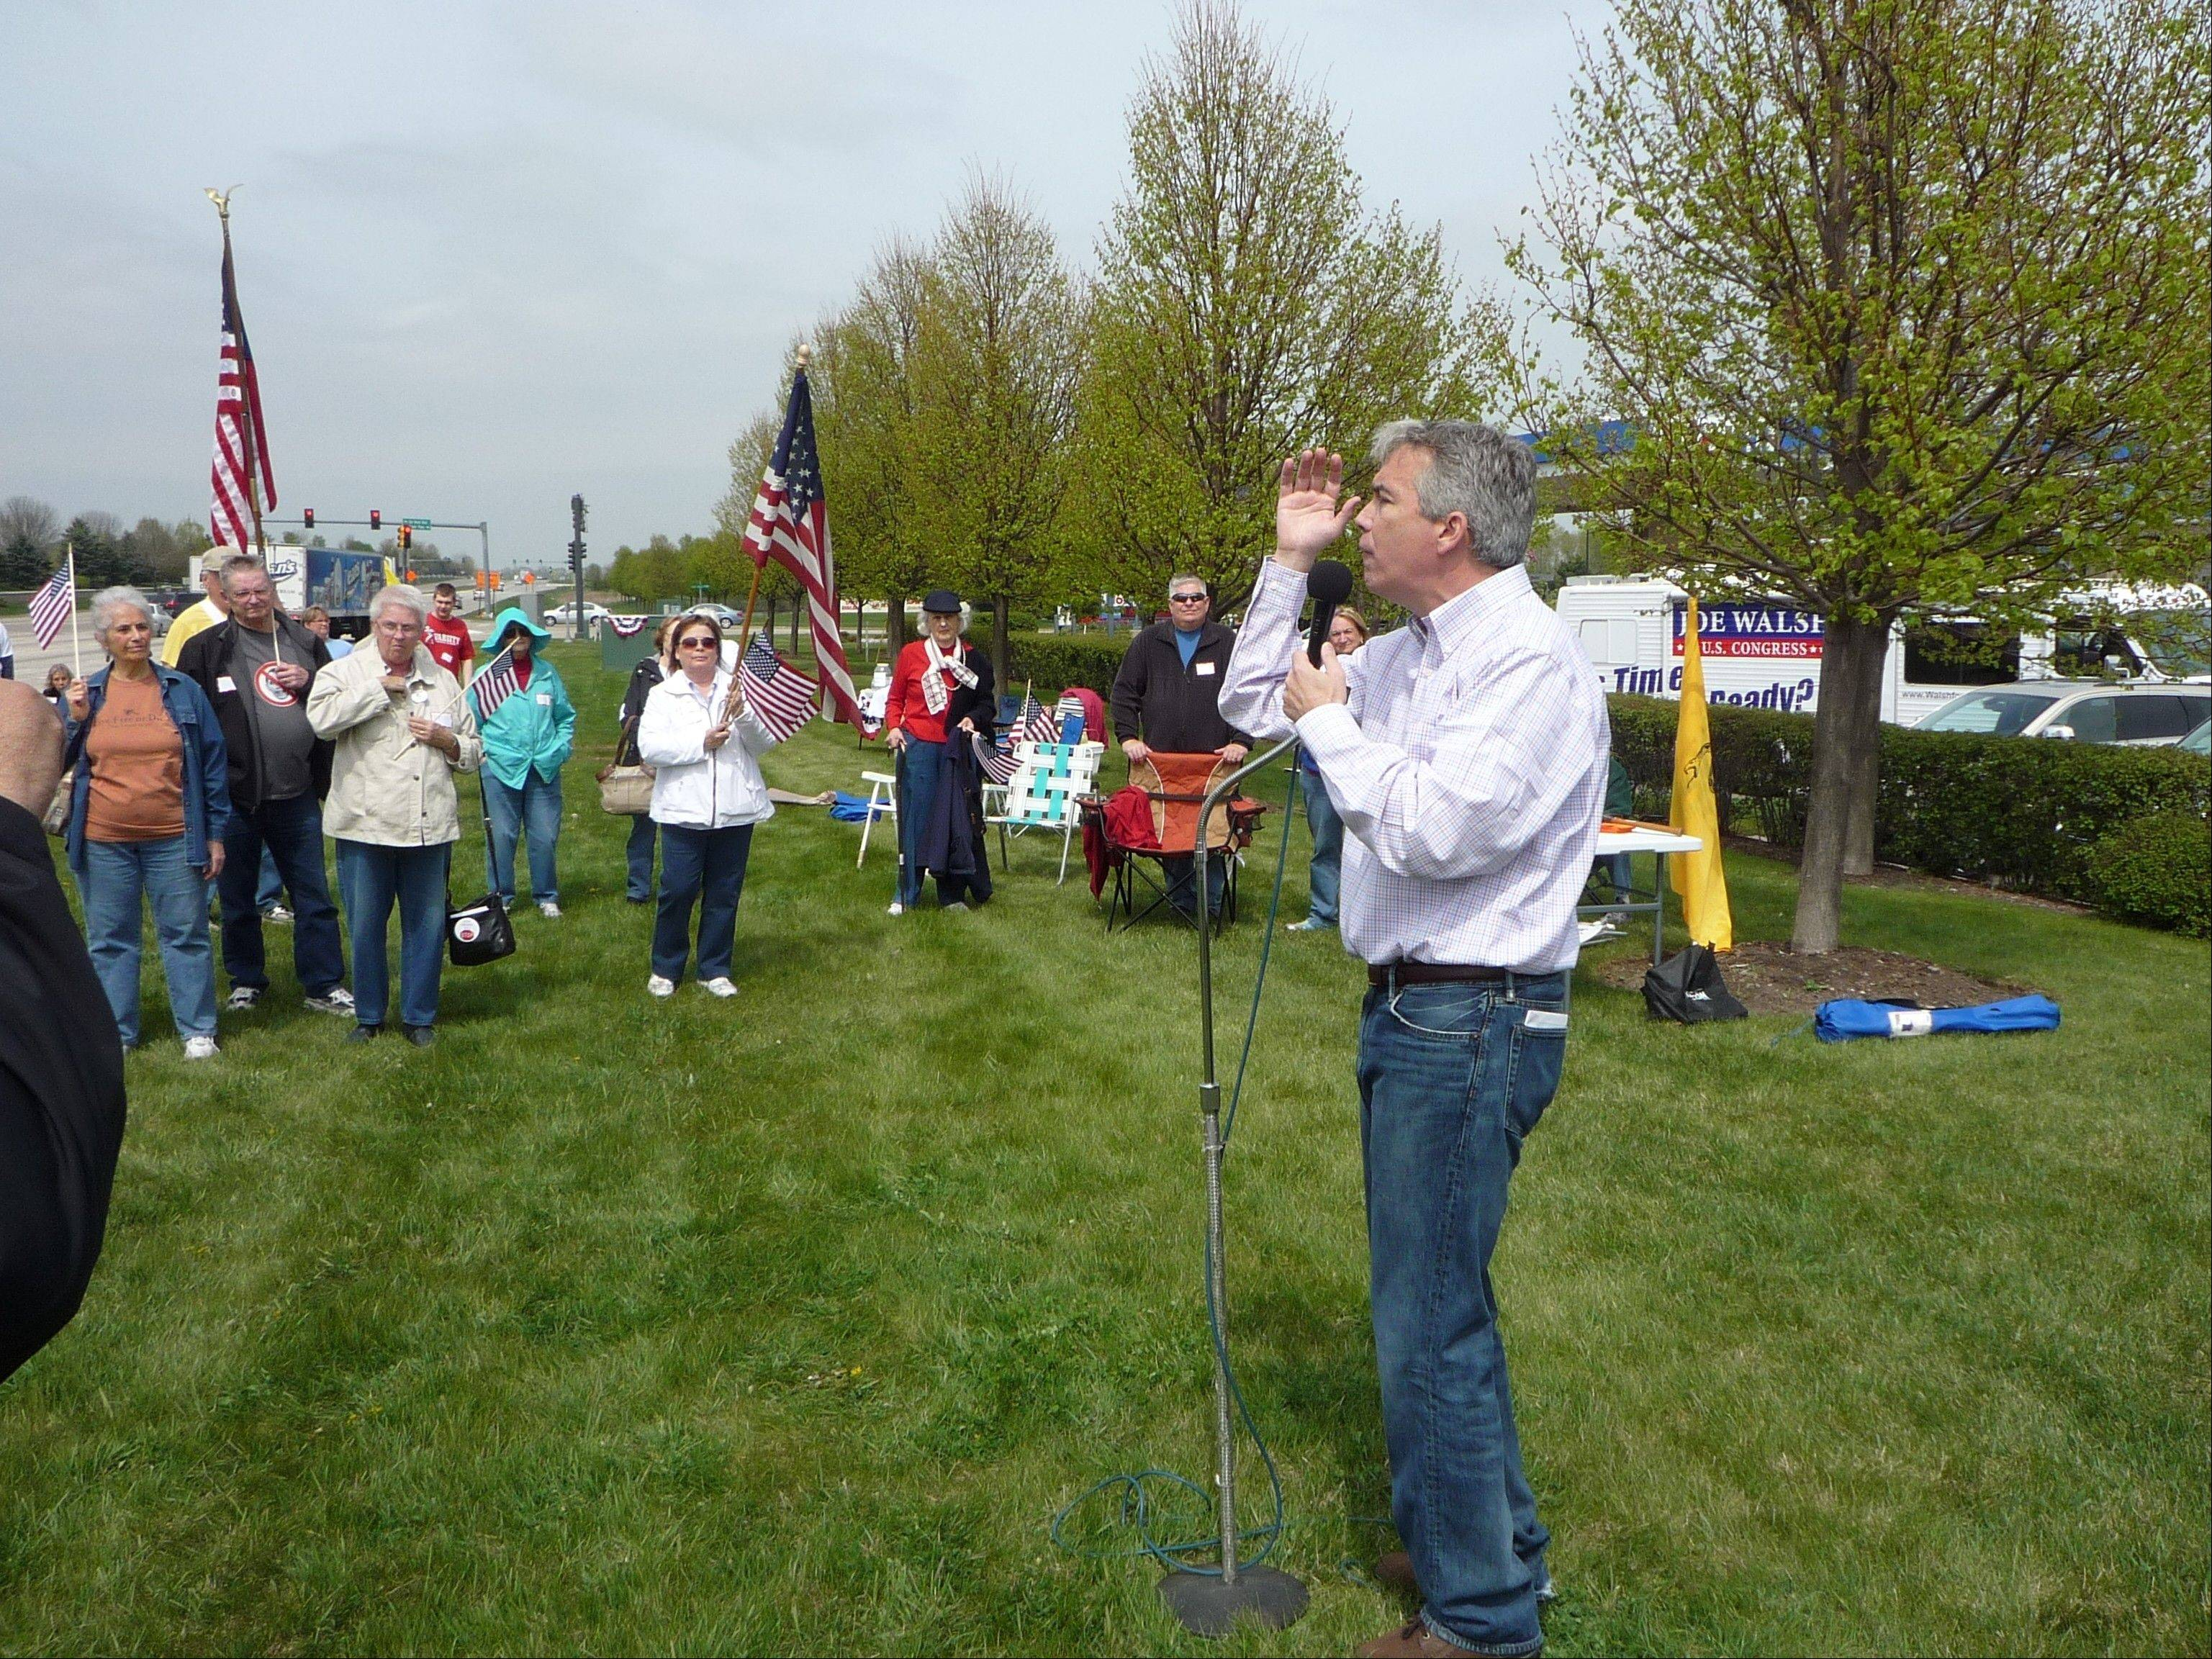 Congressman Joe Walsh speaks to a group of supporters at a rally Saturday in Huntley.